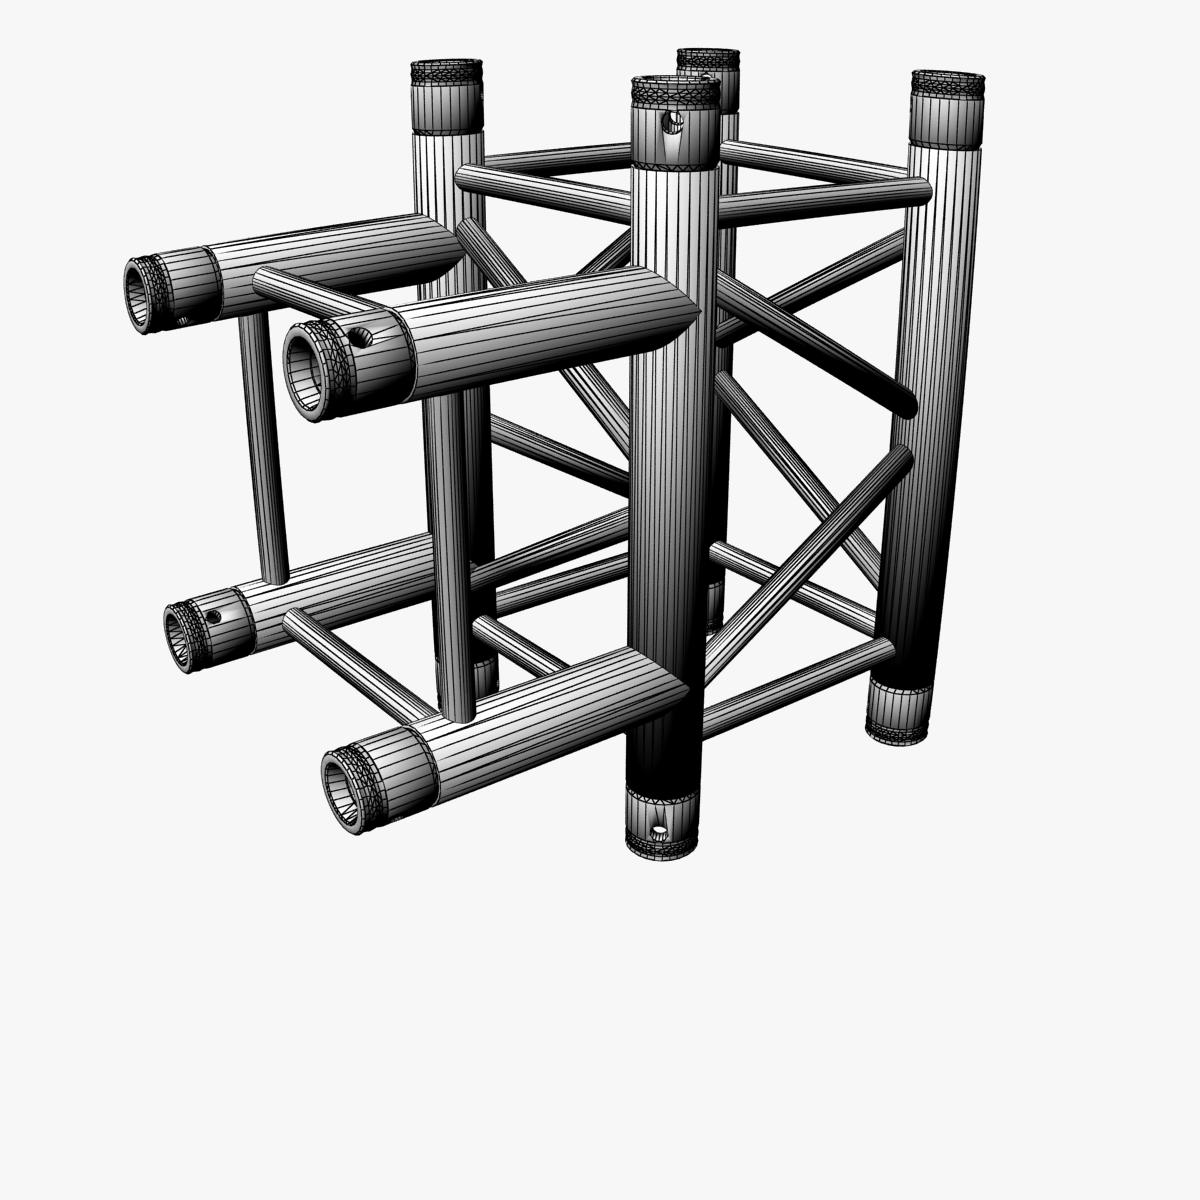 square truss standard (collection 24 modular) 3d model 3ds max dxf fbx c4d dae  texture obj 216349